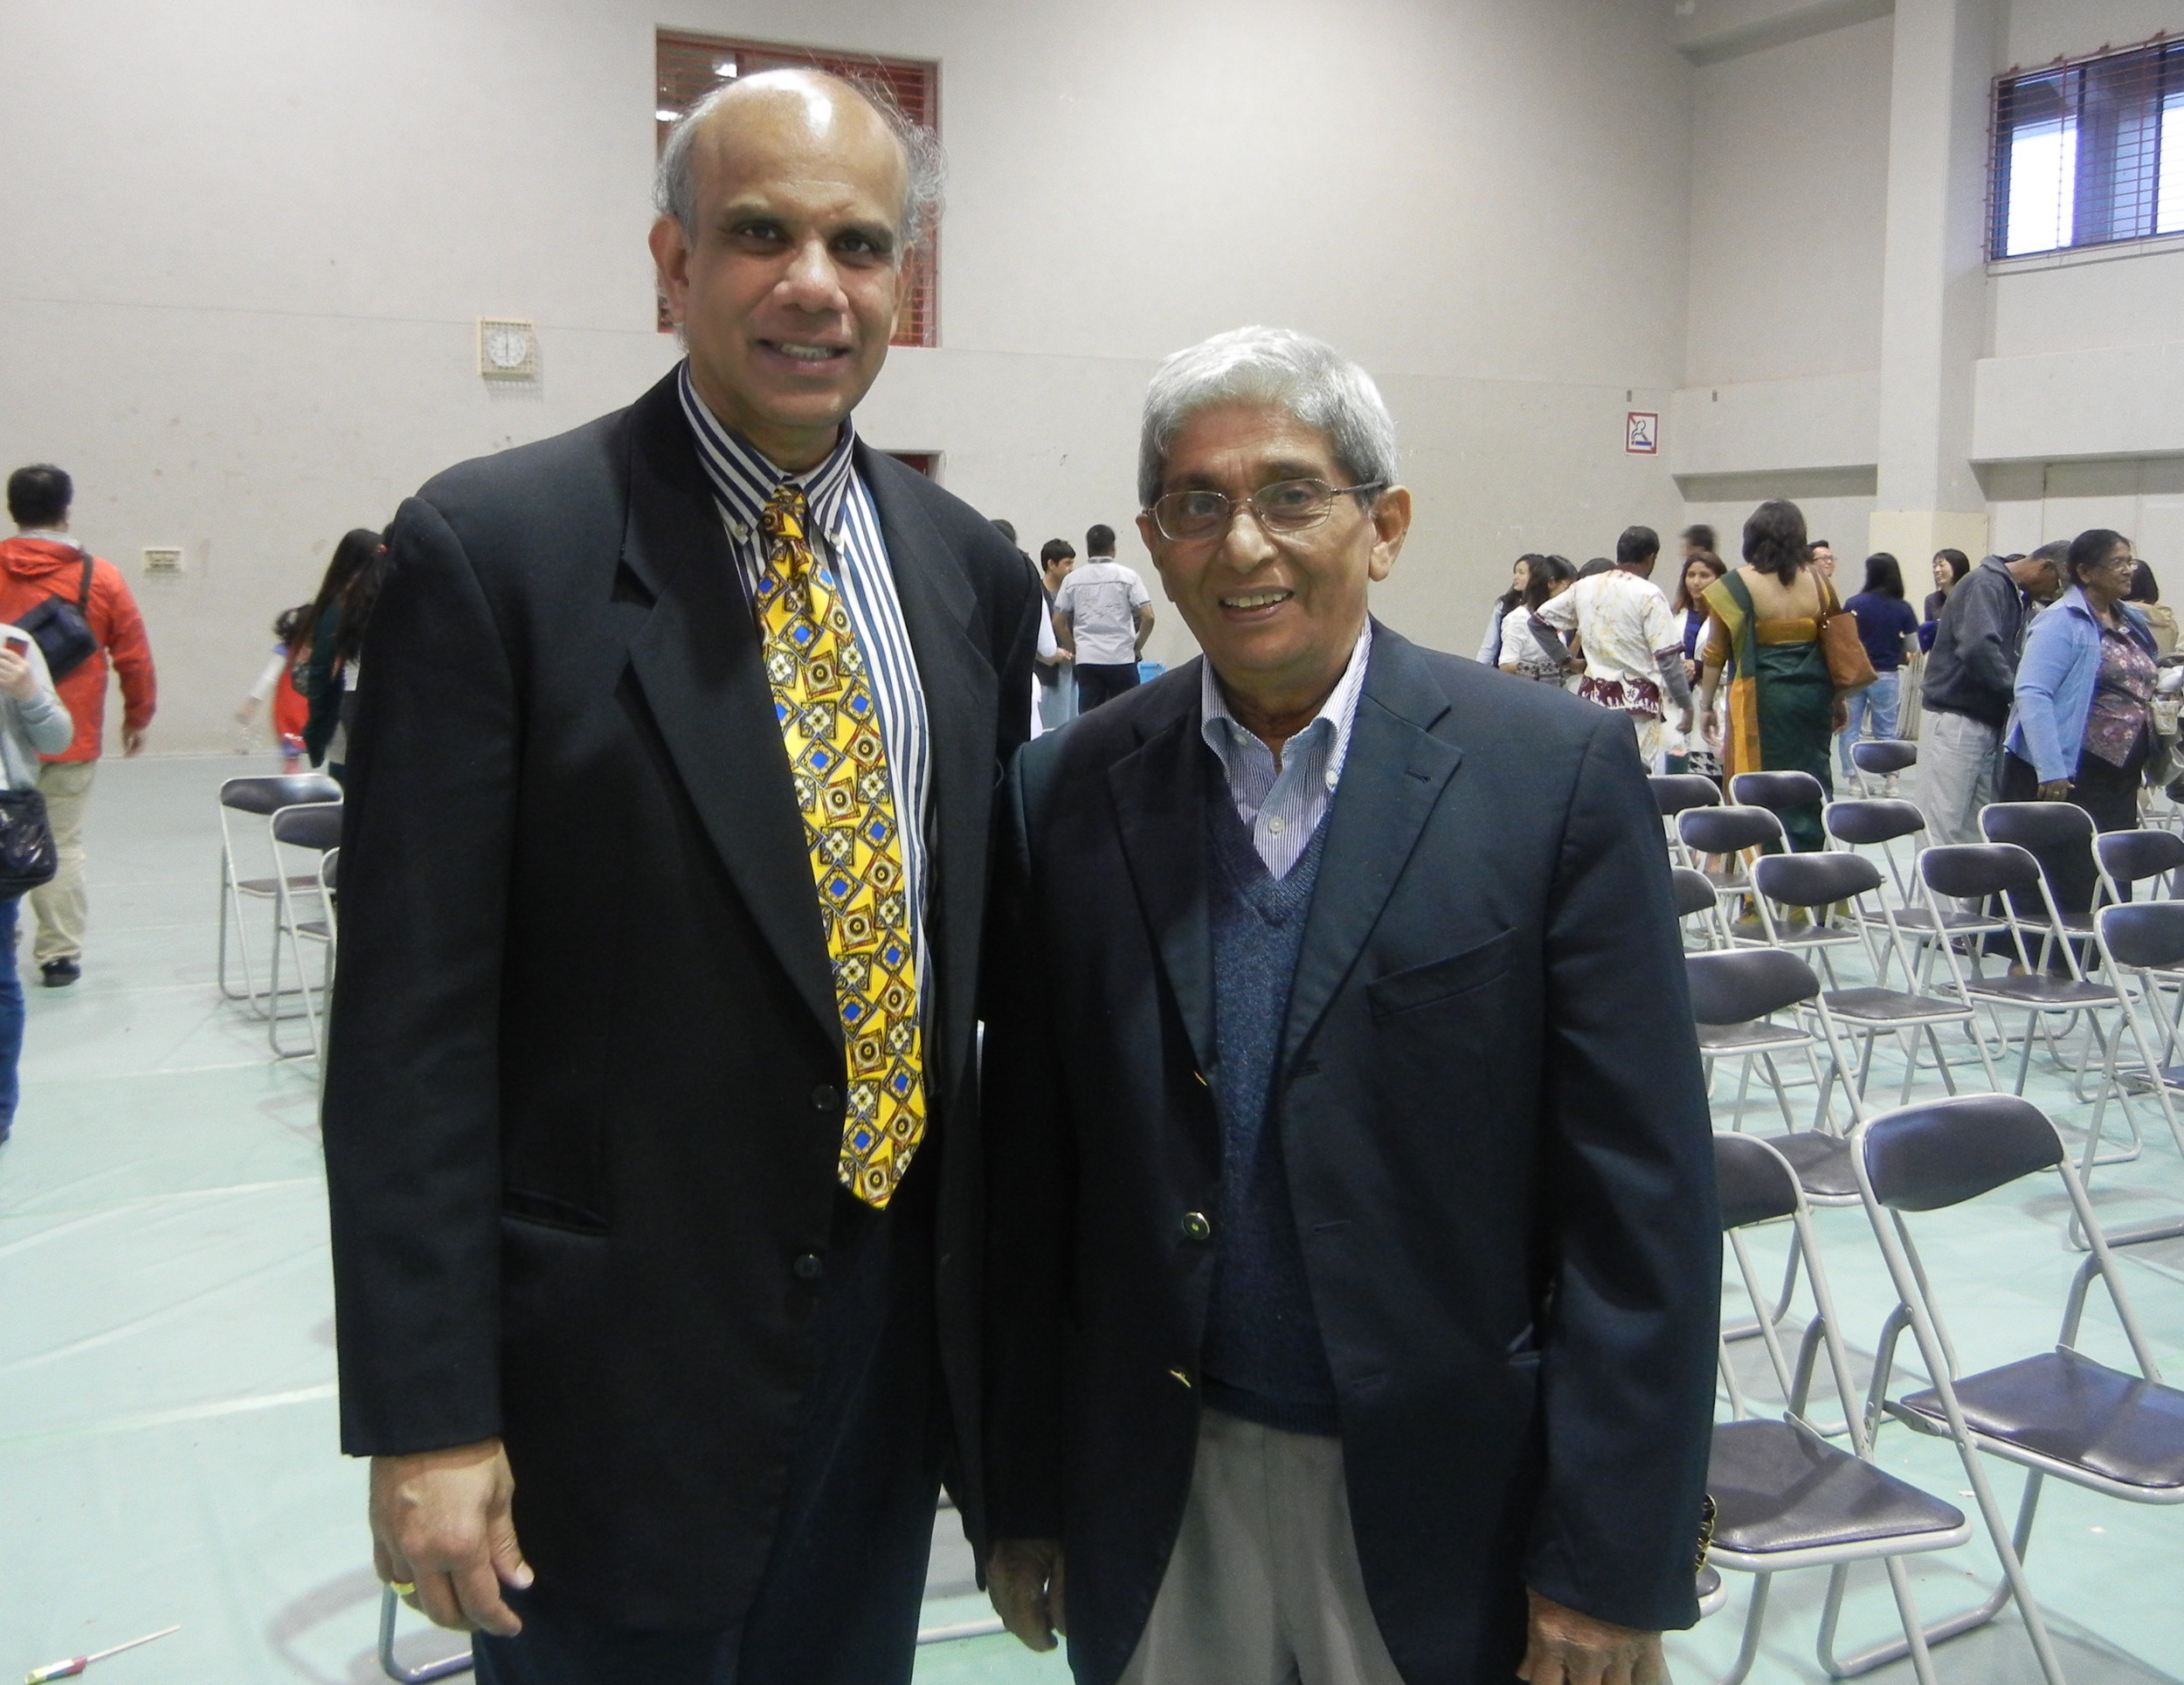 Dr. Gurumurthy Kalyanaram and Professor W.D. Lakshman, Vice Chancellor of Colombo University.JPG